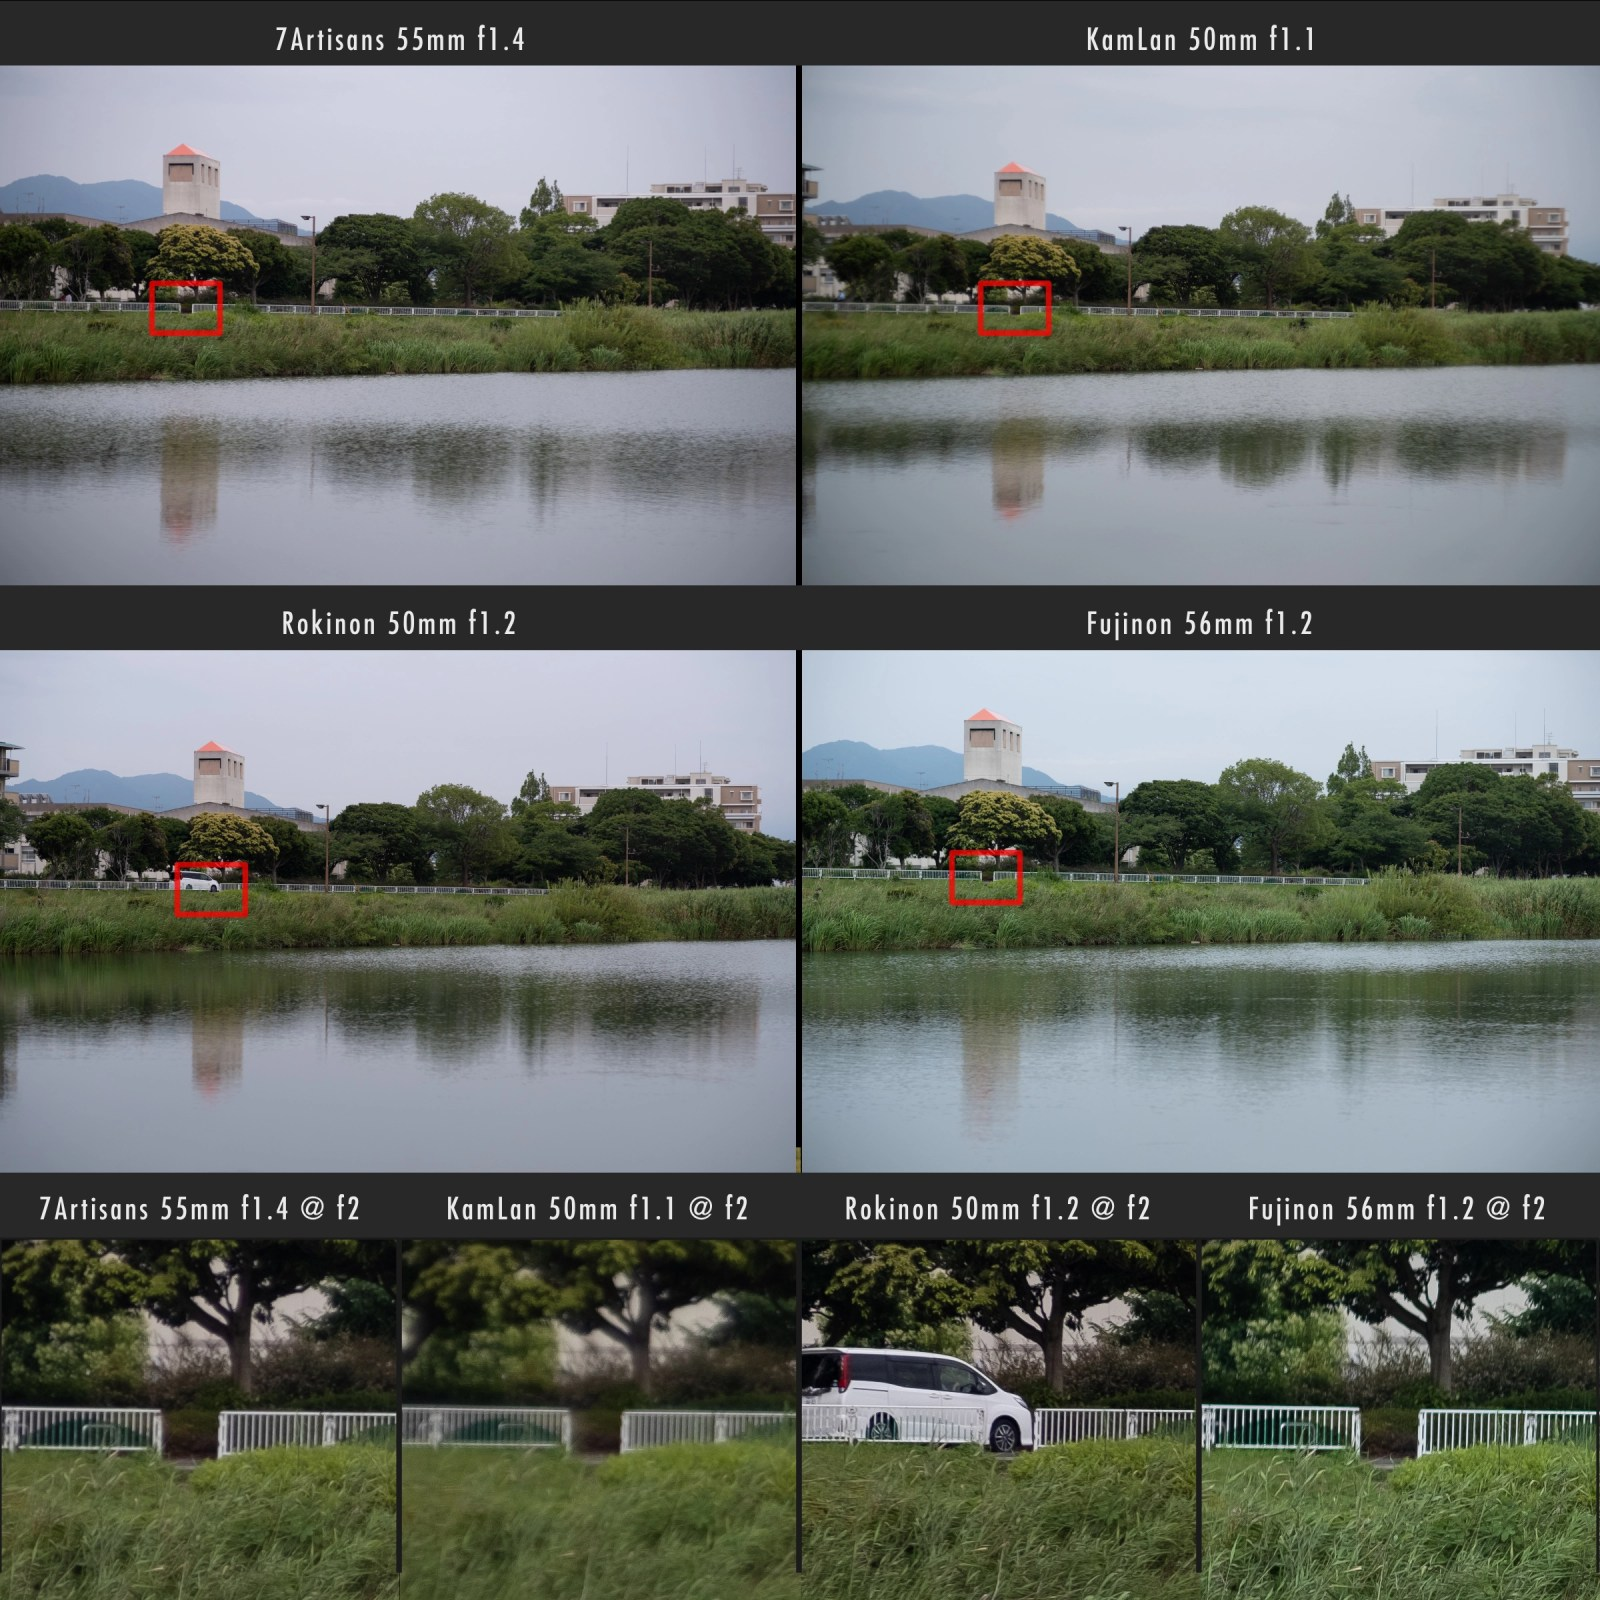 Kamlan 50mm f1.1 vs 7Artisans 55mm f1.4 vs Rokinon 50mm f1.2 Mid Sharpness Comparison